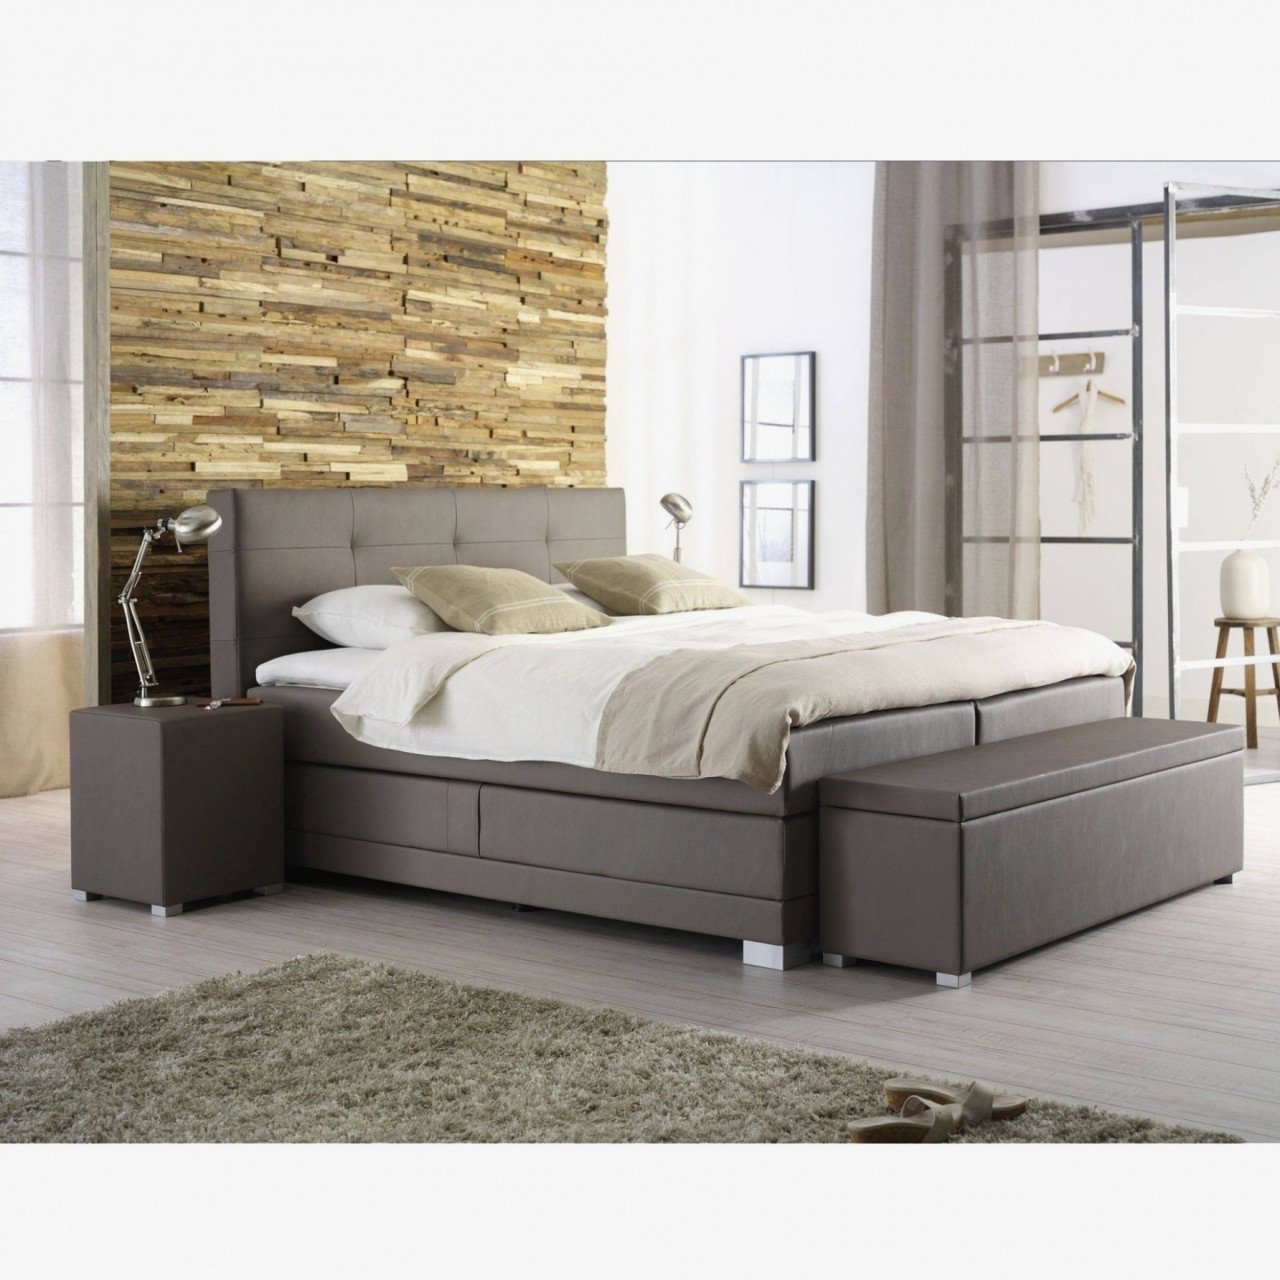 Queen Bedroom Furniture Set Best Of Bed with Drawers Under — Procura Home Blog